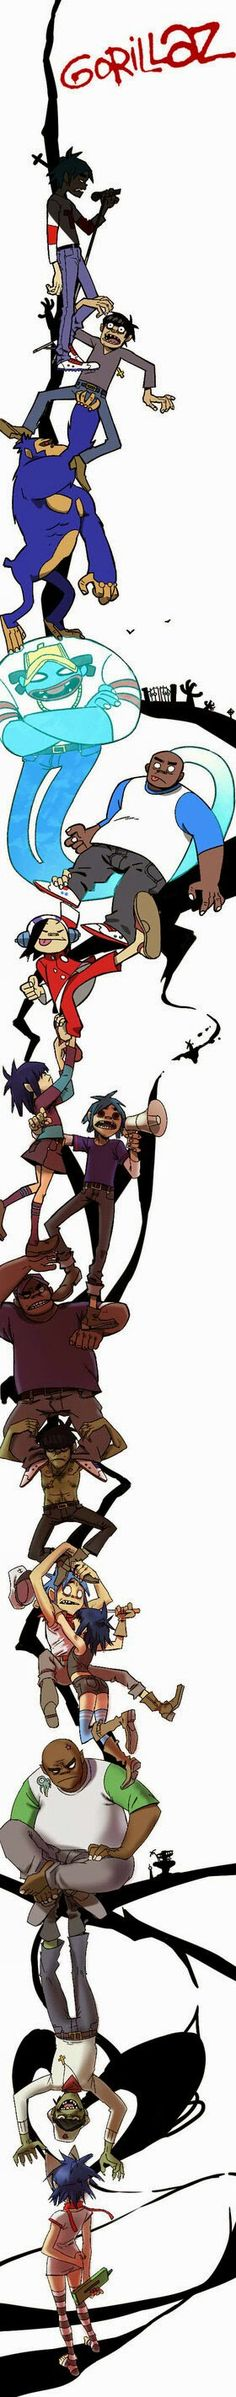 The Gorillaz!